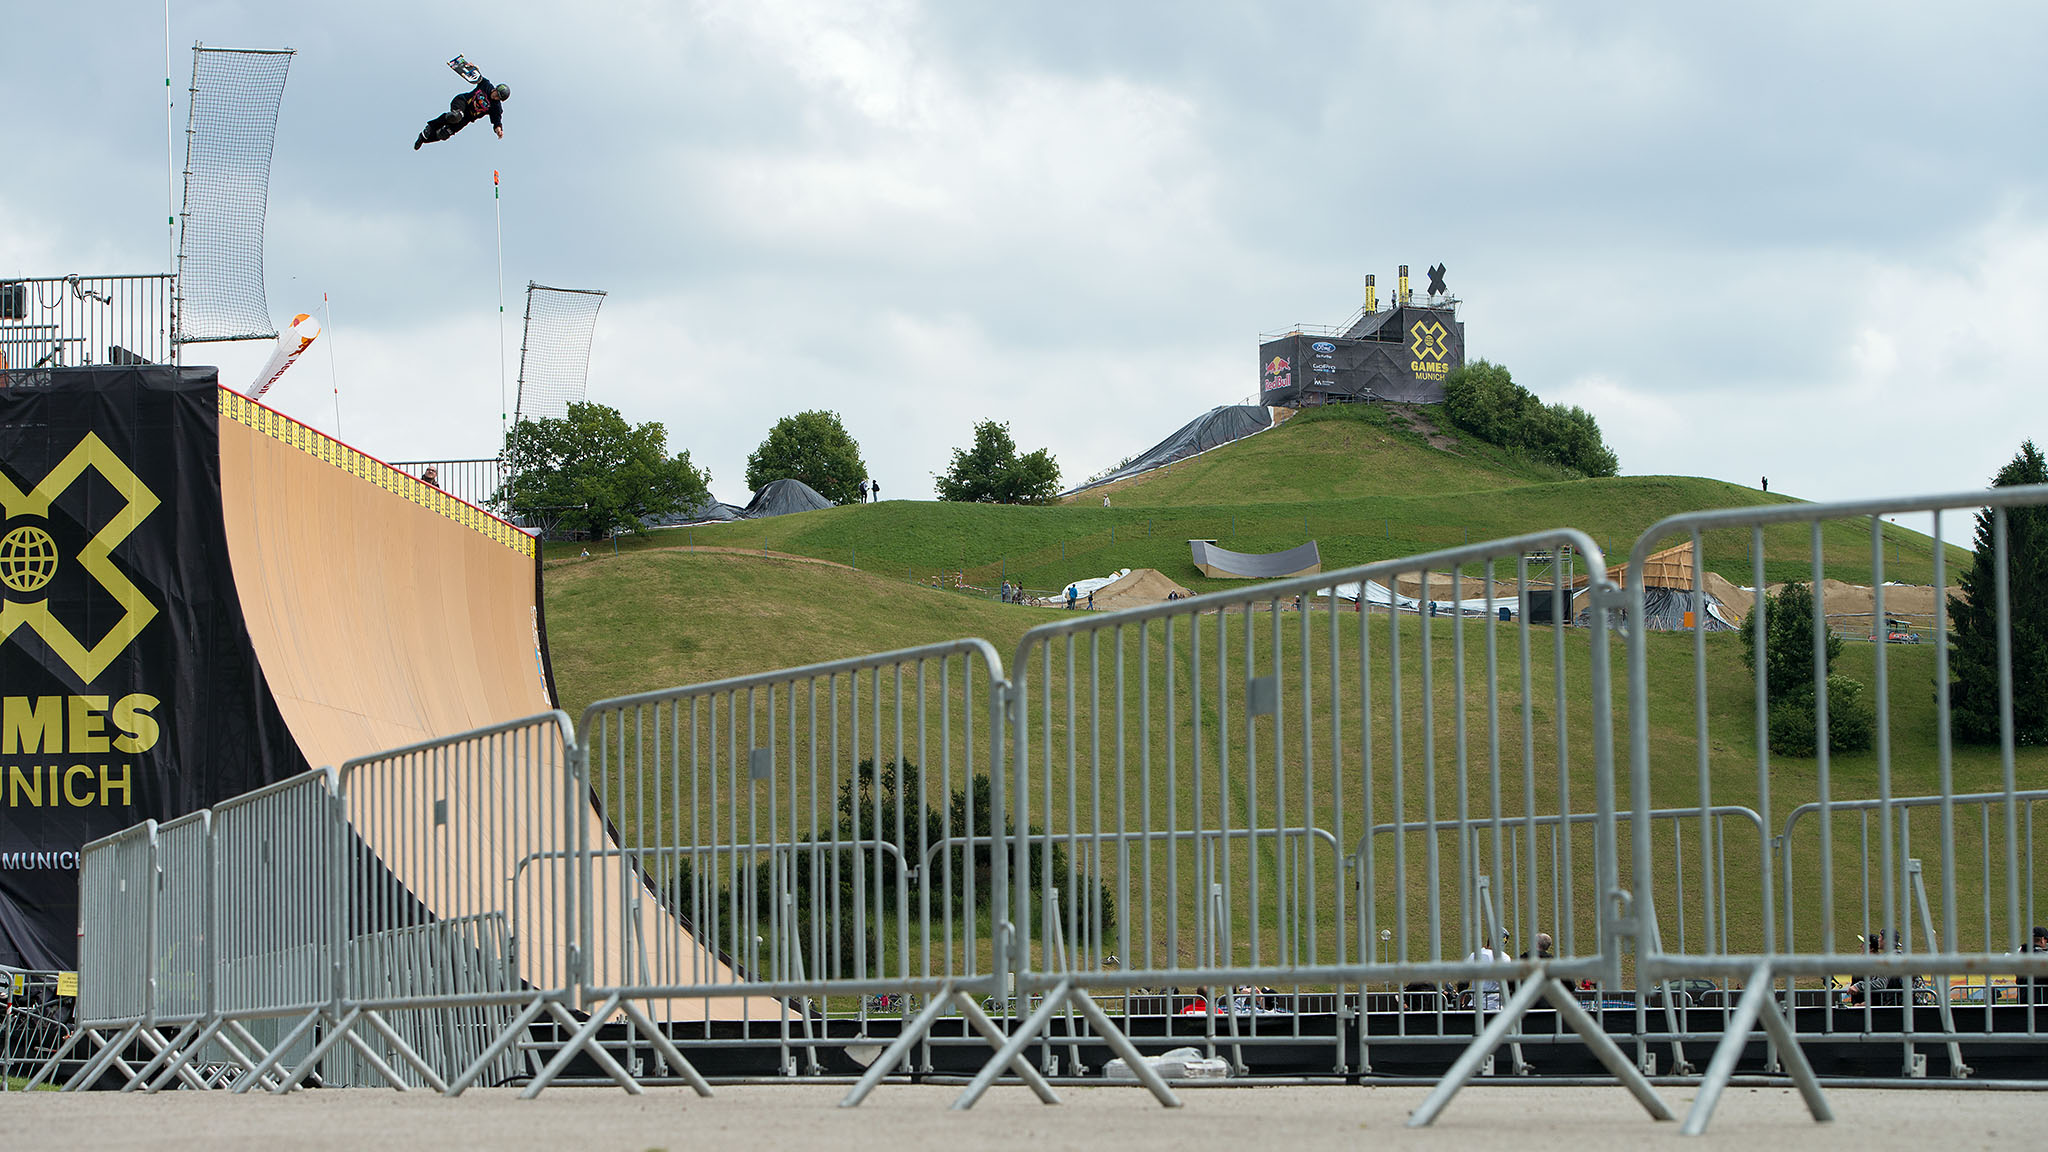 Jake Brown was knocked out during practice for Saturday's Skateboard Big Air final.